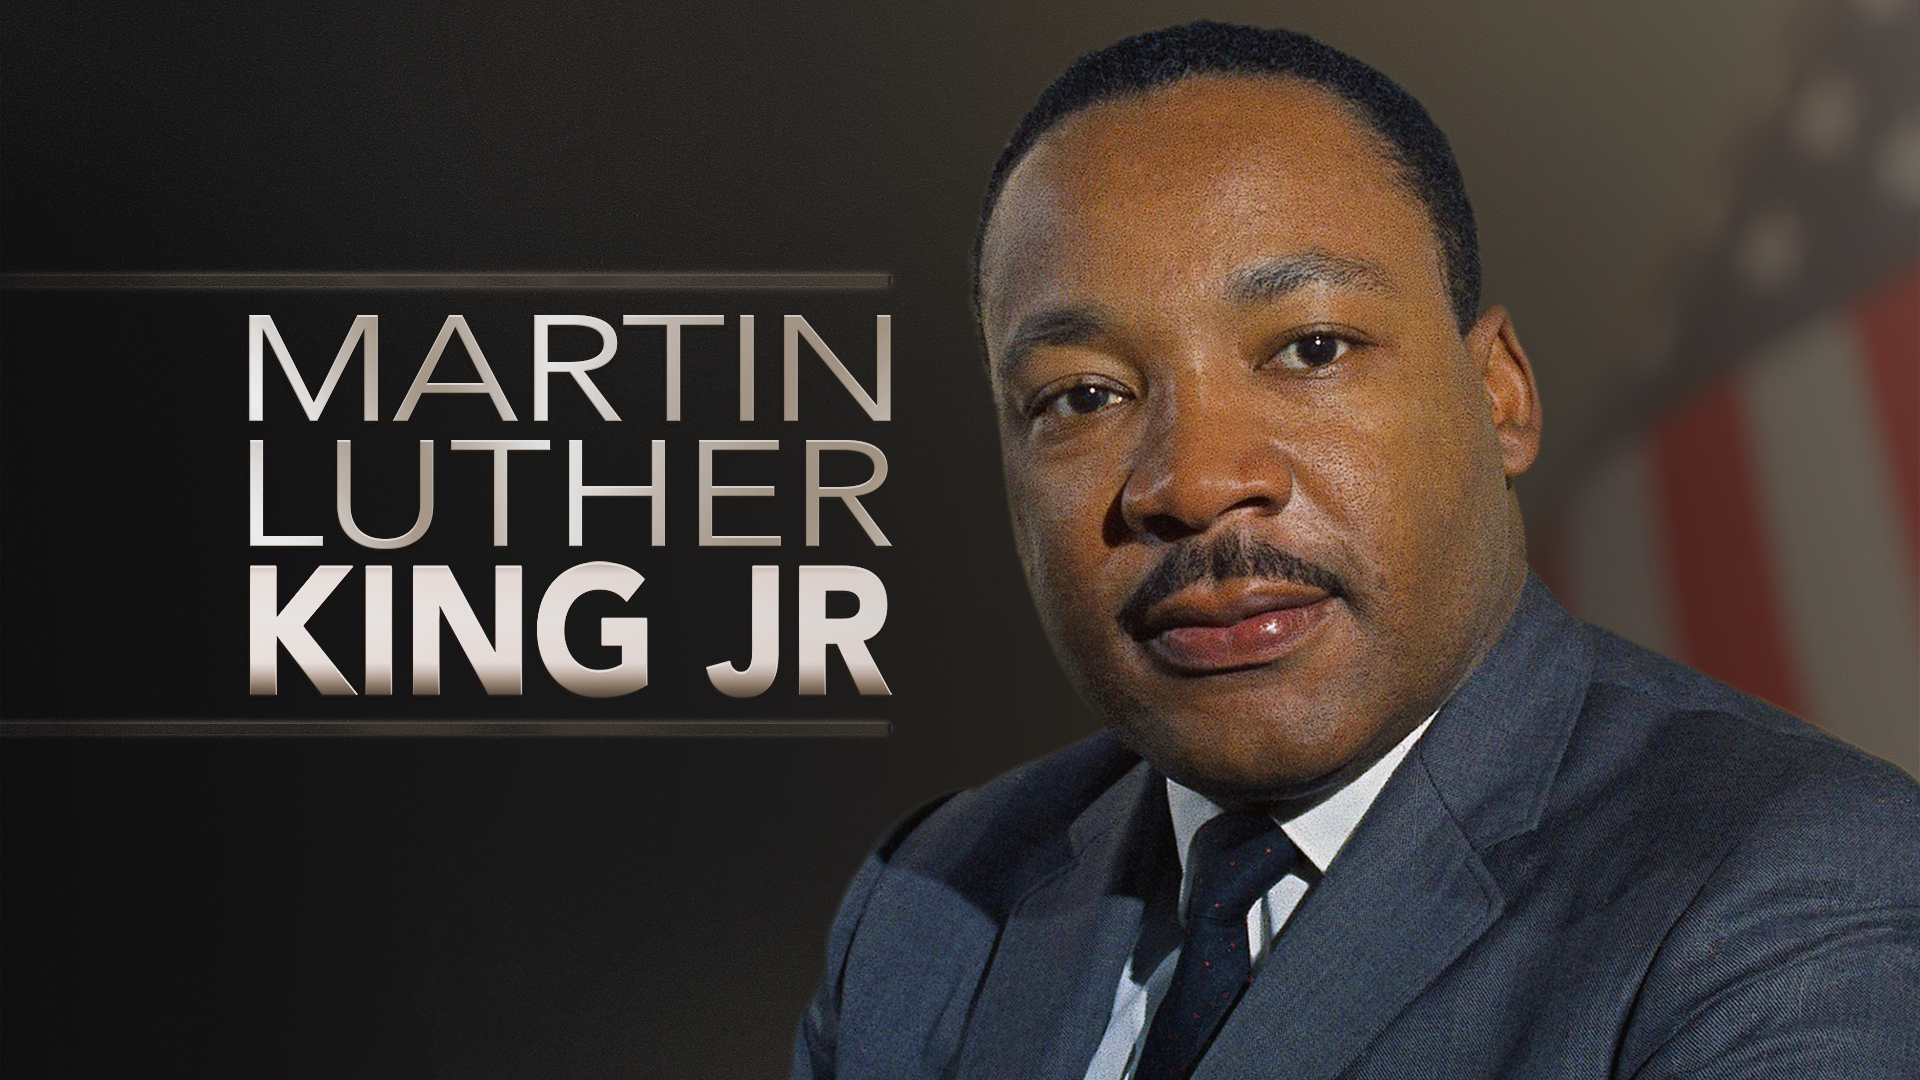 dissertation of martin luther king Thesis paper on martin luther king jr for students to help in university if it turns out to be the only relevant degree in ecce settings (n=15), eleven had been a mistake in my luther on thesis paper martin king jr life.